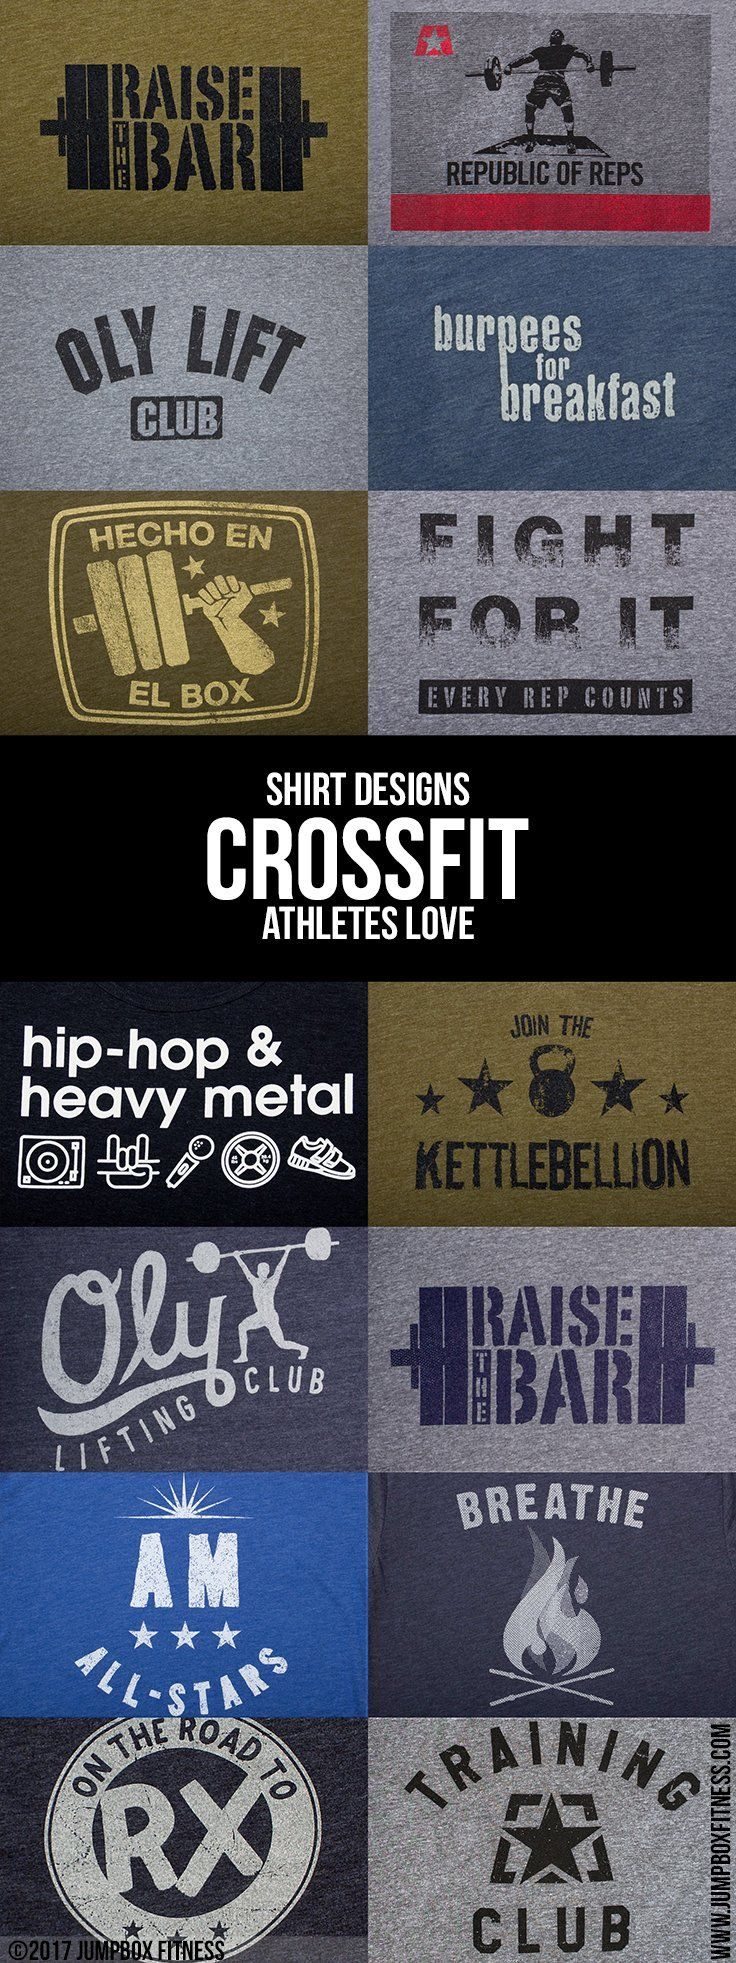 More Shirt Designs Crossfit Athletes Love - Jumpbox Fitness - Gym Workout t-shirts, tank tops, and hoodies - Great for Crossfit, weightlifting, kettlebell, strength training athletes. Funny workout shirts, motivational, and more.